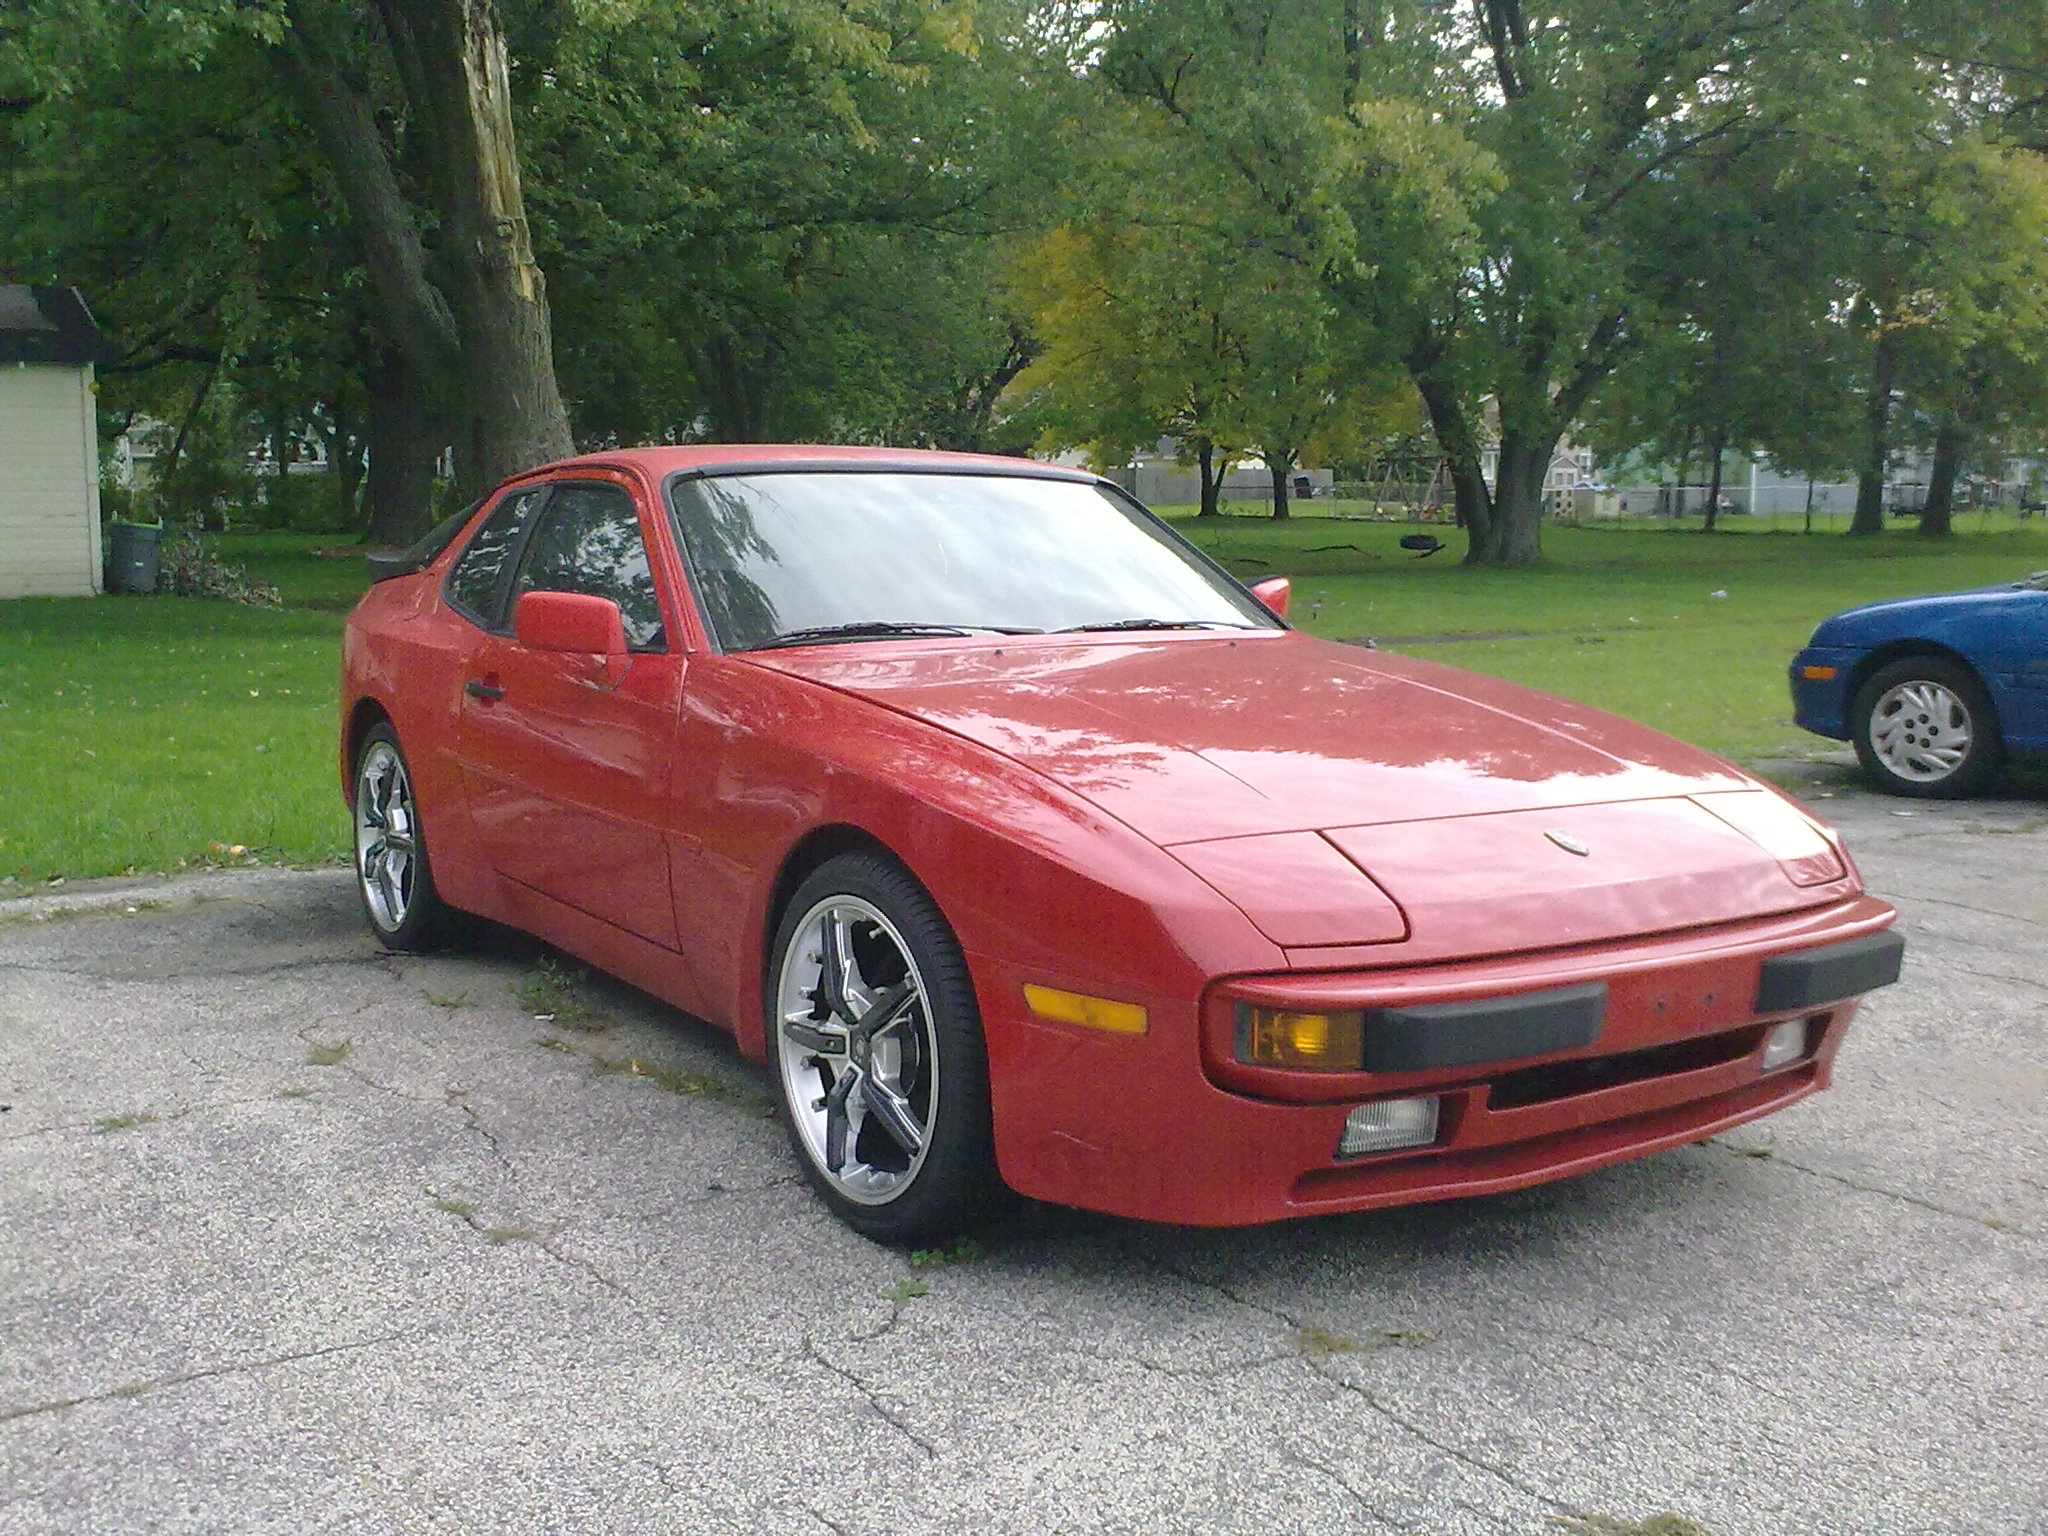 ripper426 39 s 1984 porsche 944 in green bay wi. Black Bedroom Furniture Sets. Home Design Ideas